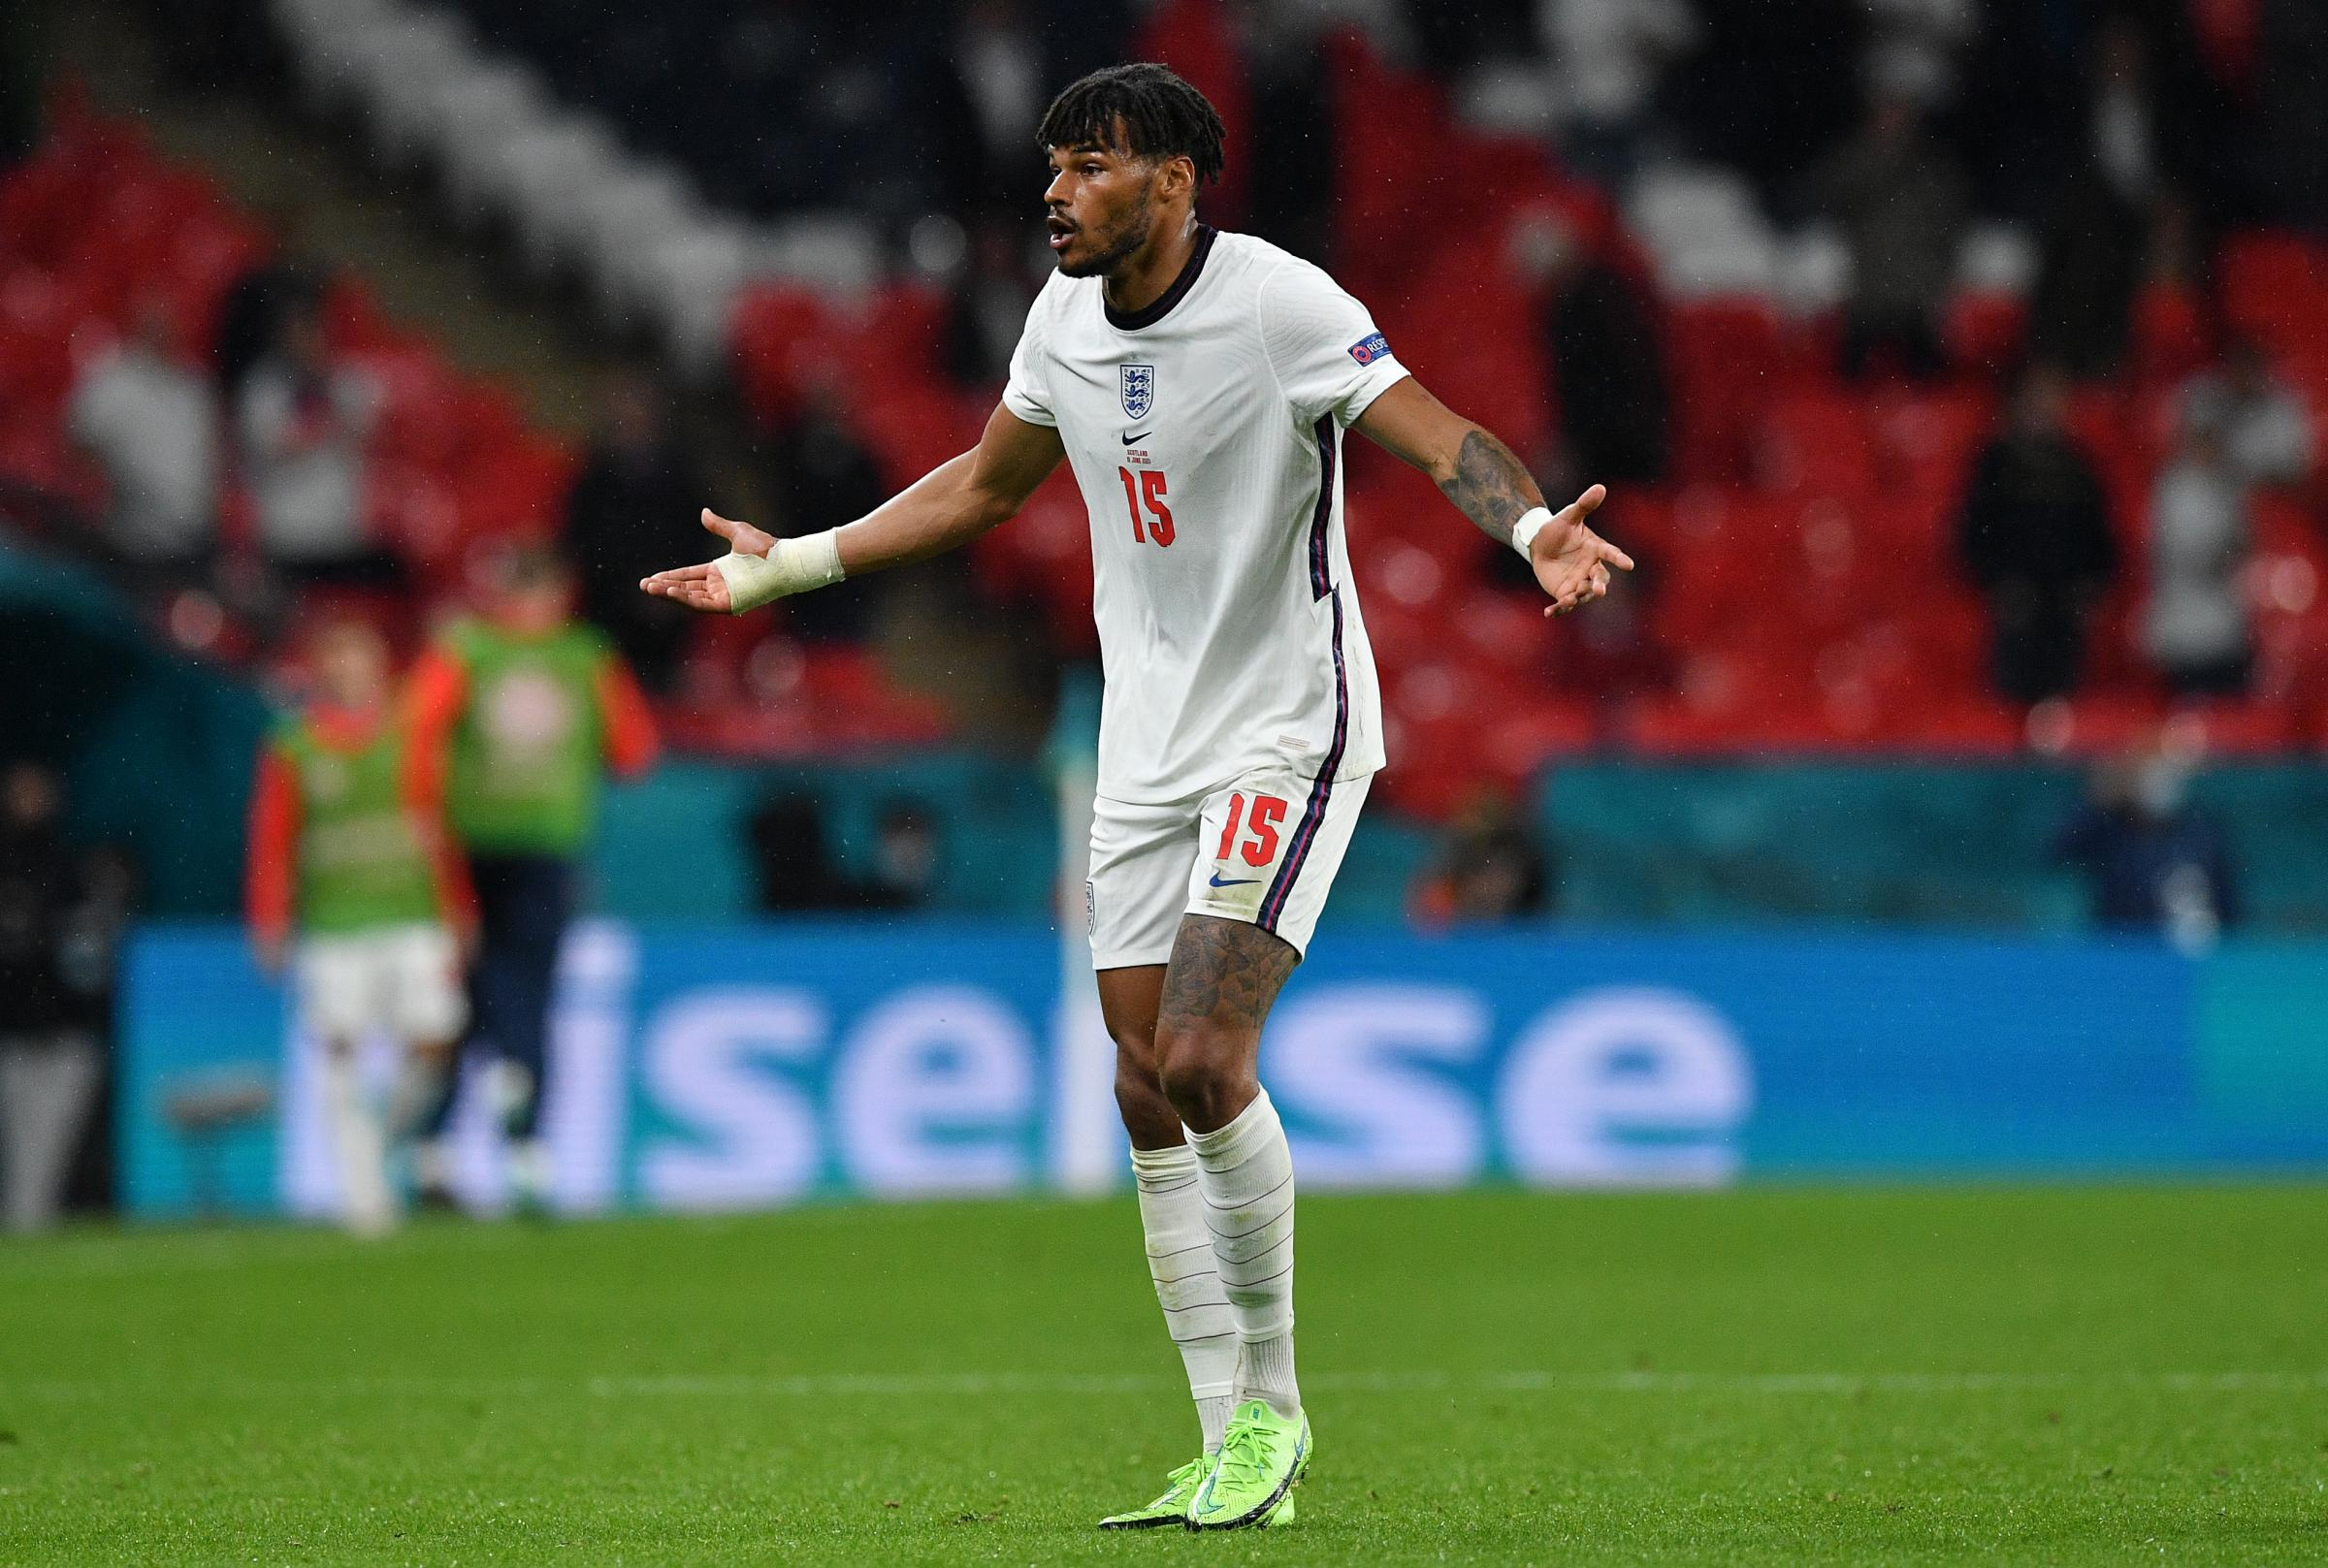 Tyrone Mings pinpoints 'annoying' Scotland opponent as England are held at Wembley